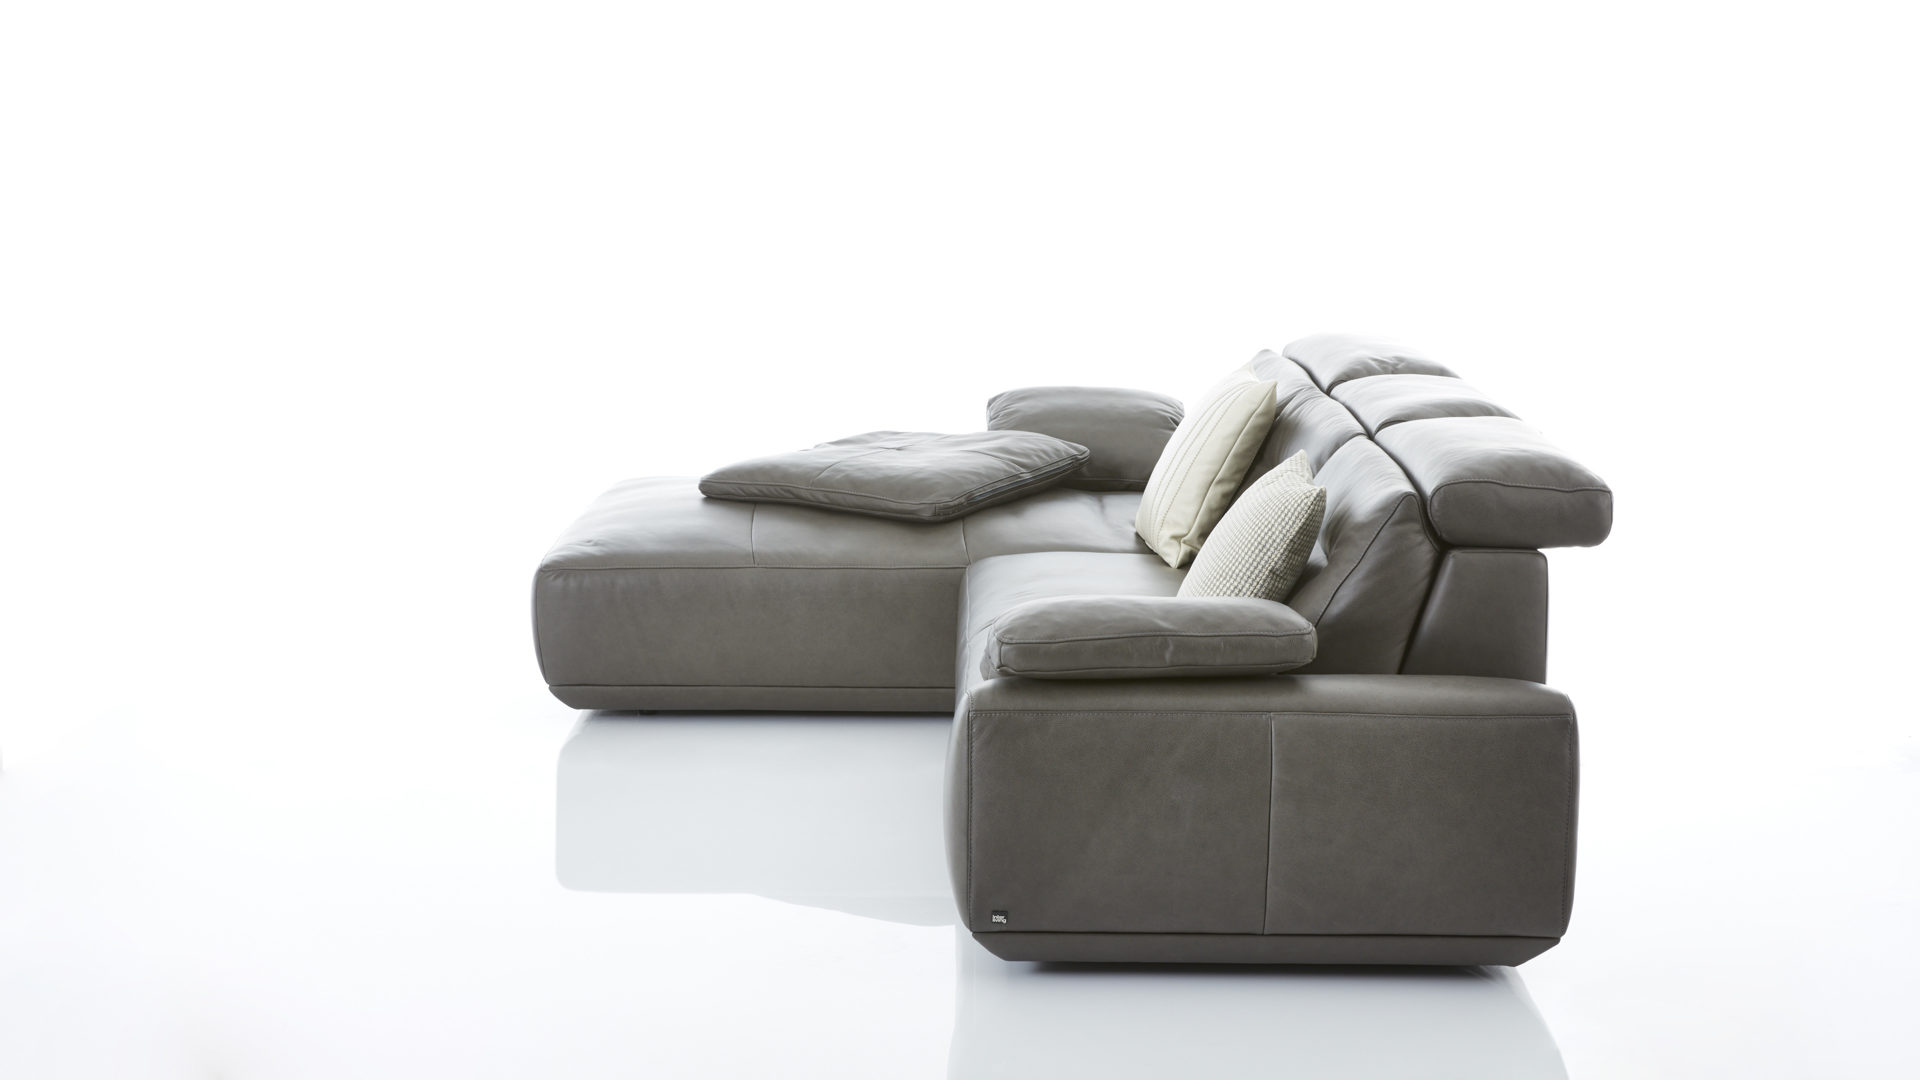 W.schillig Ecksofa Leder Interliving Sofa Serie 4000 Eckkombination Graphitfarbenes